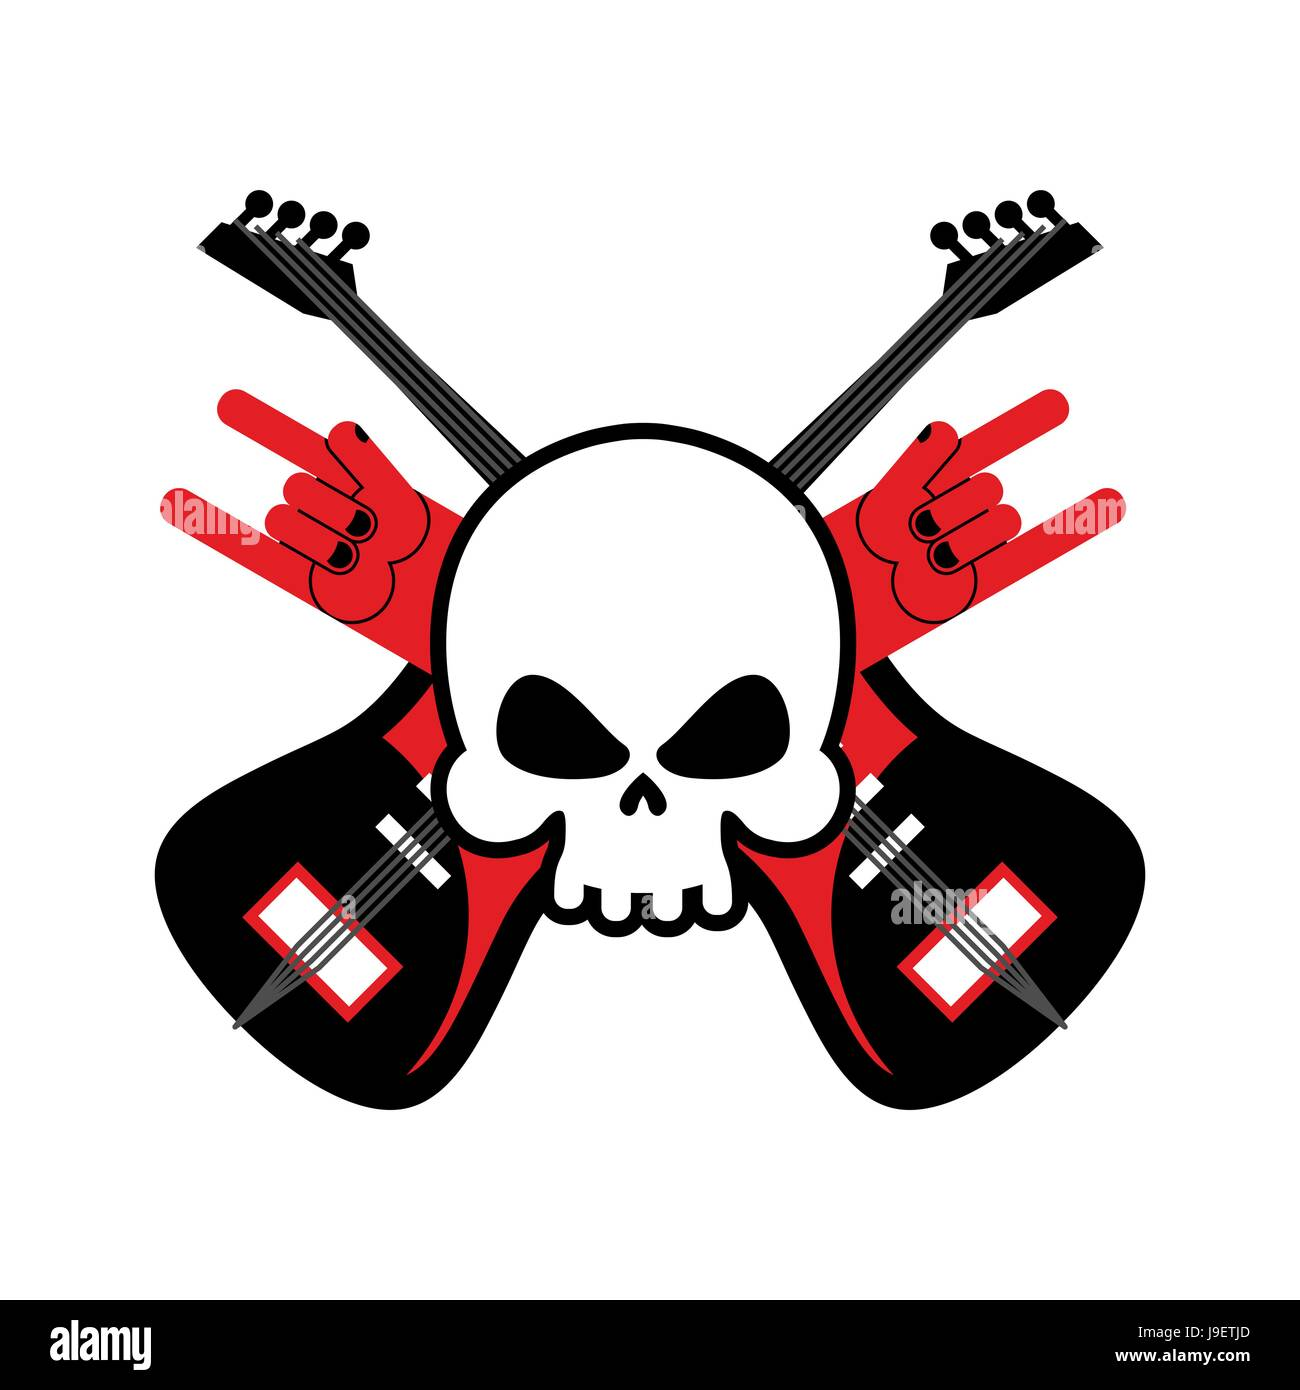 Skull with guitars and rock hand symbol logo for rock band logo skull with guitars and rock hand symbol logo for rock band logo for lovers rock music buycottarizona Images